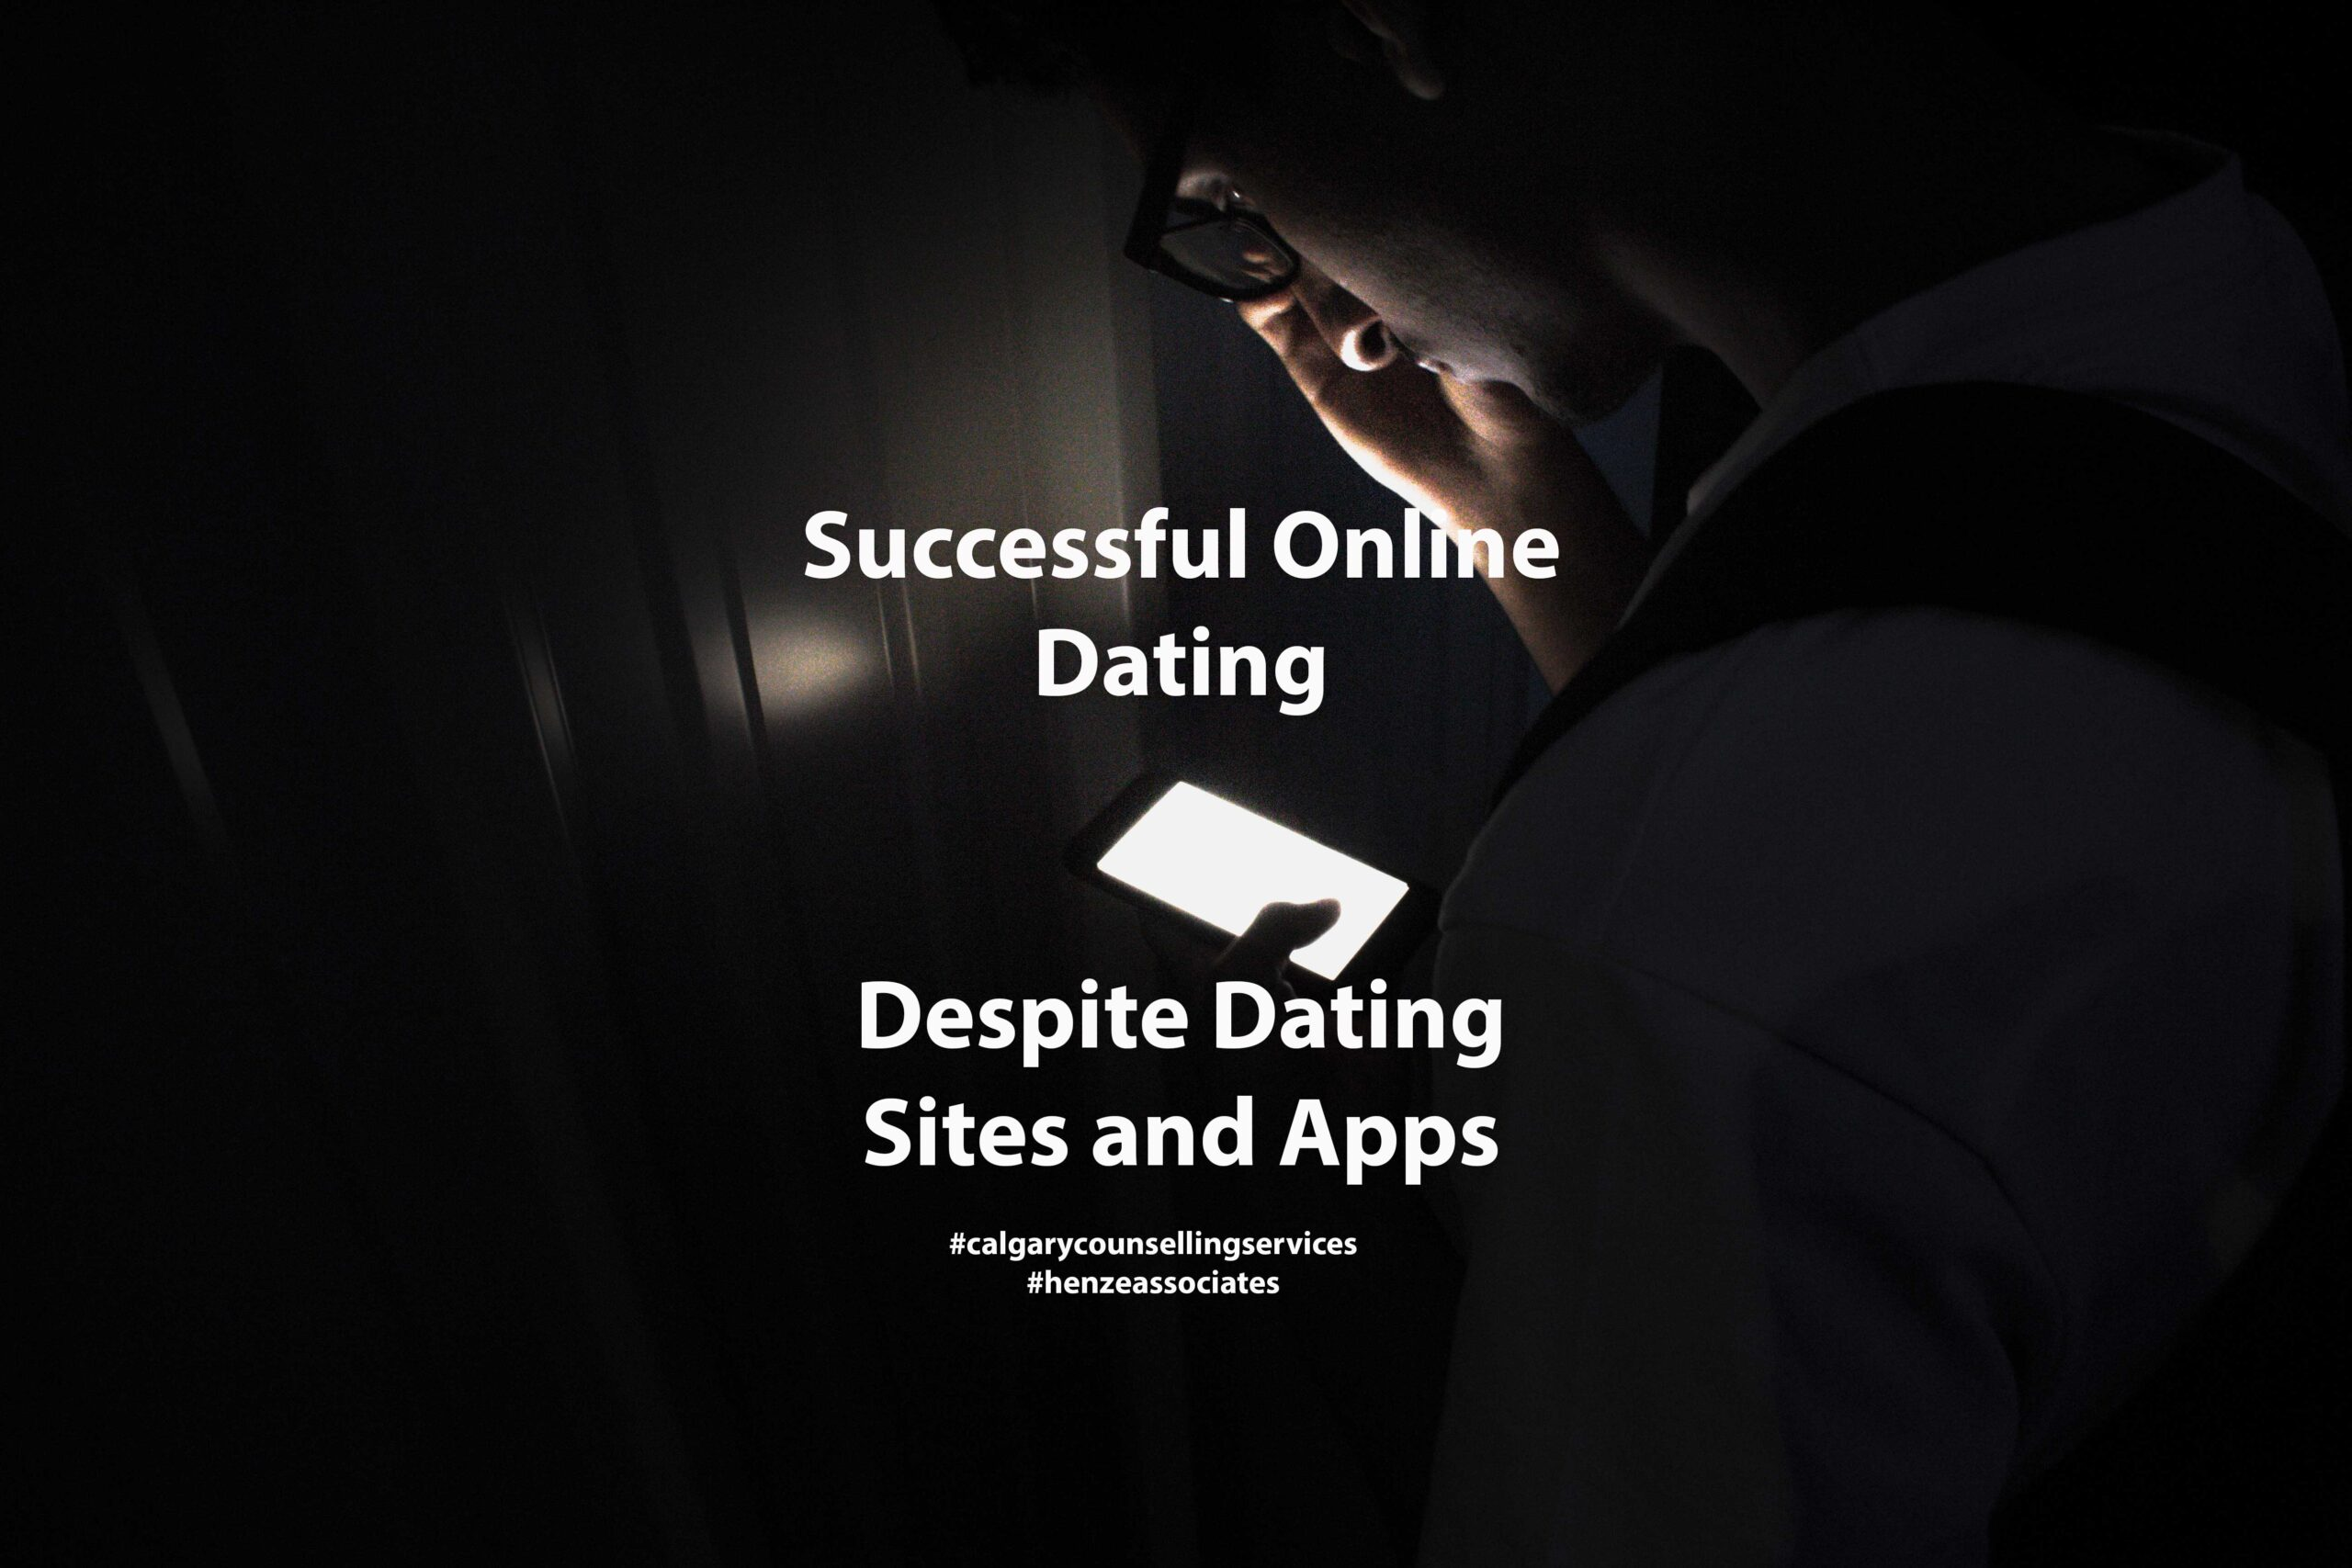 calgary counselling services article title image man on dating app site